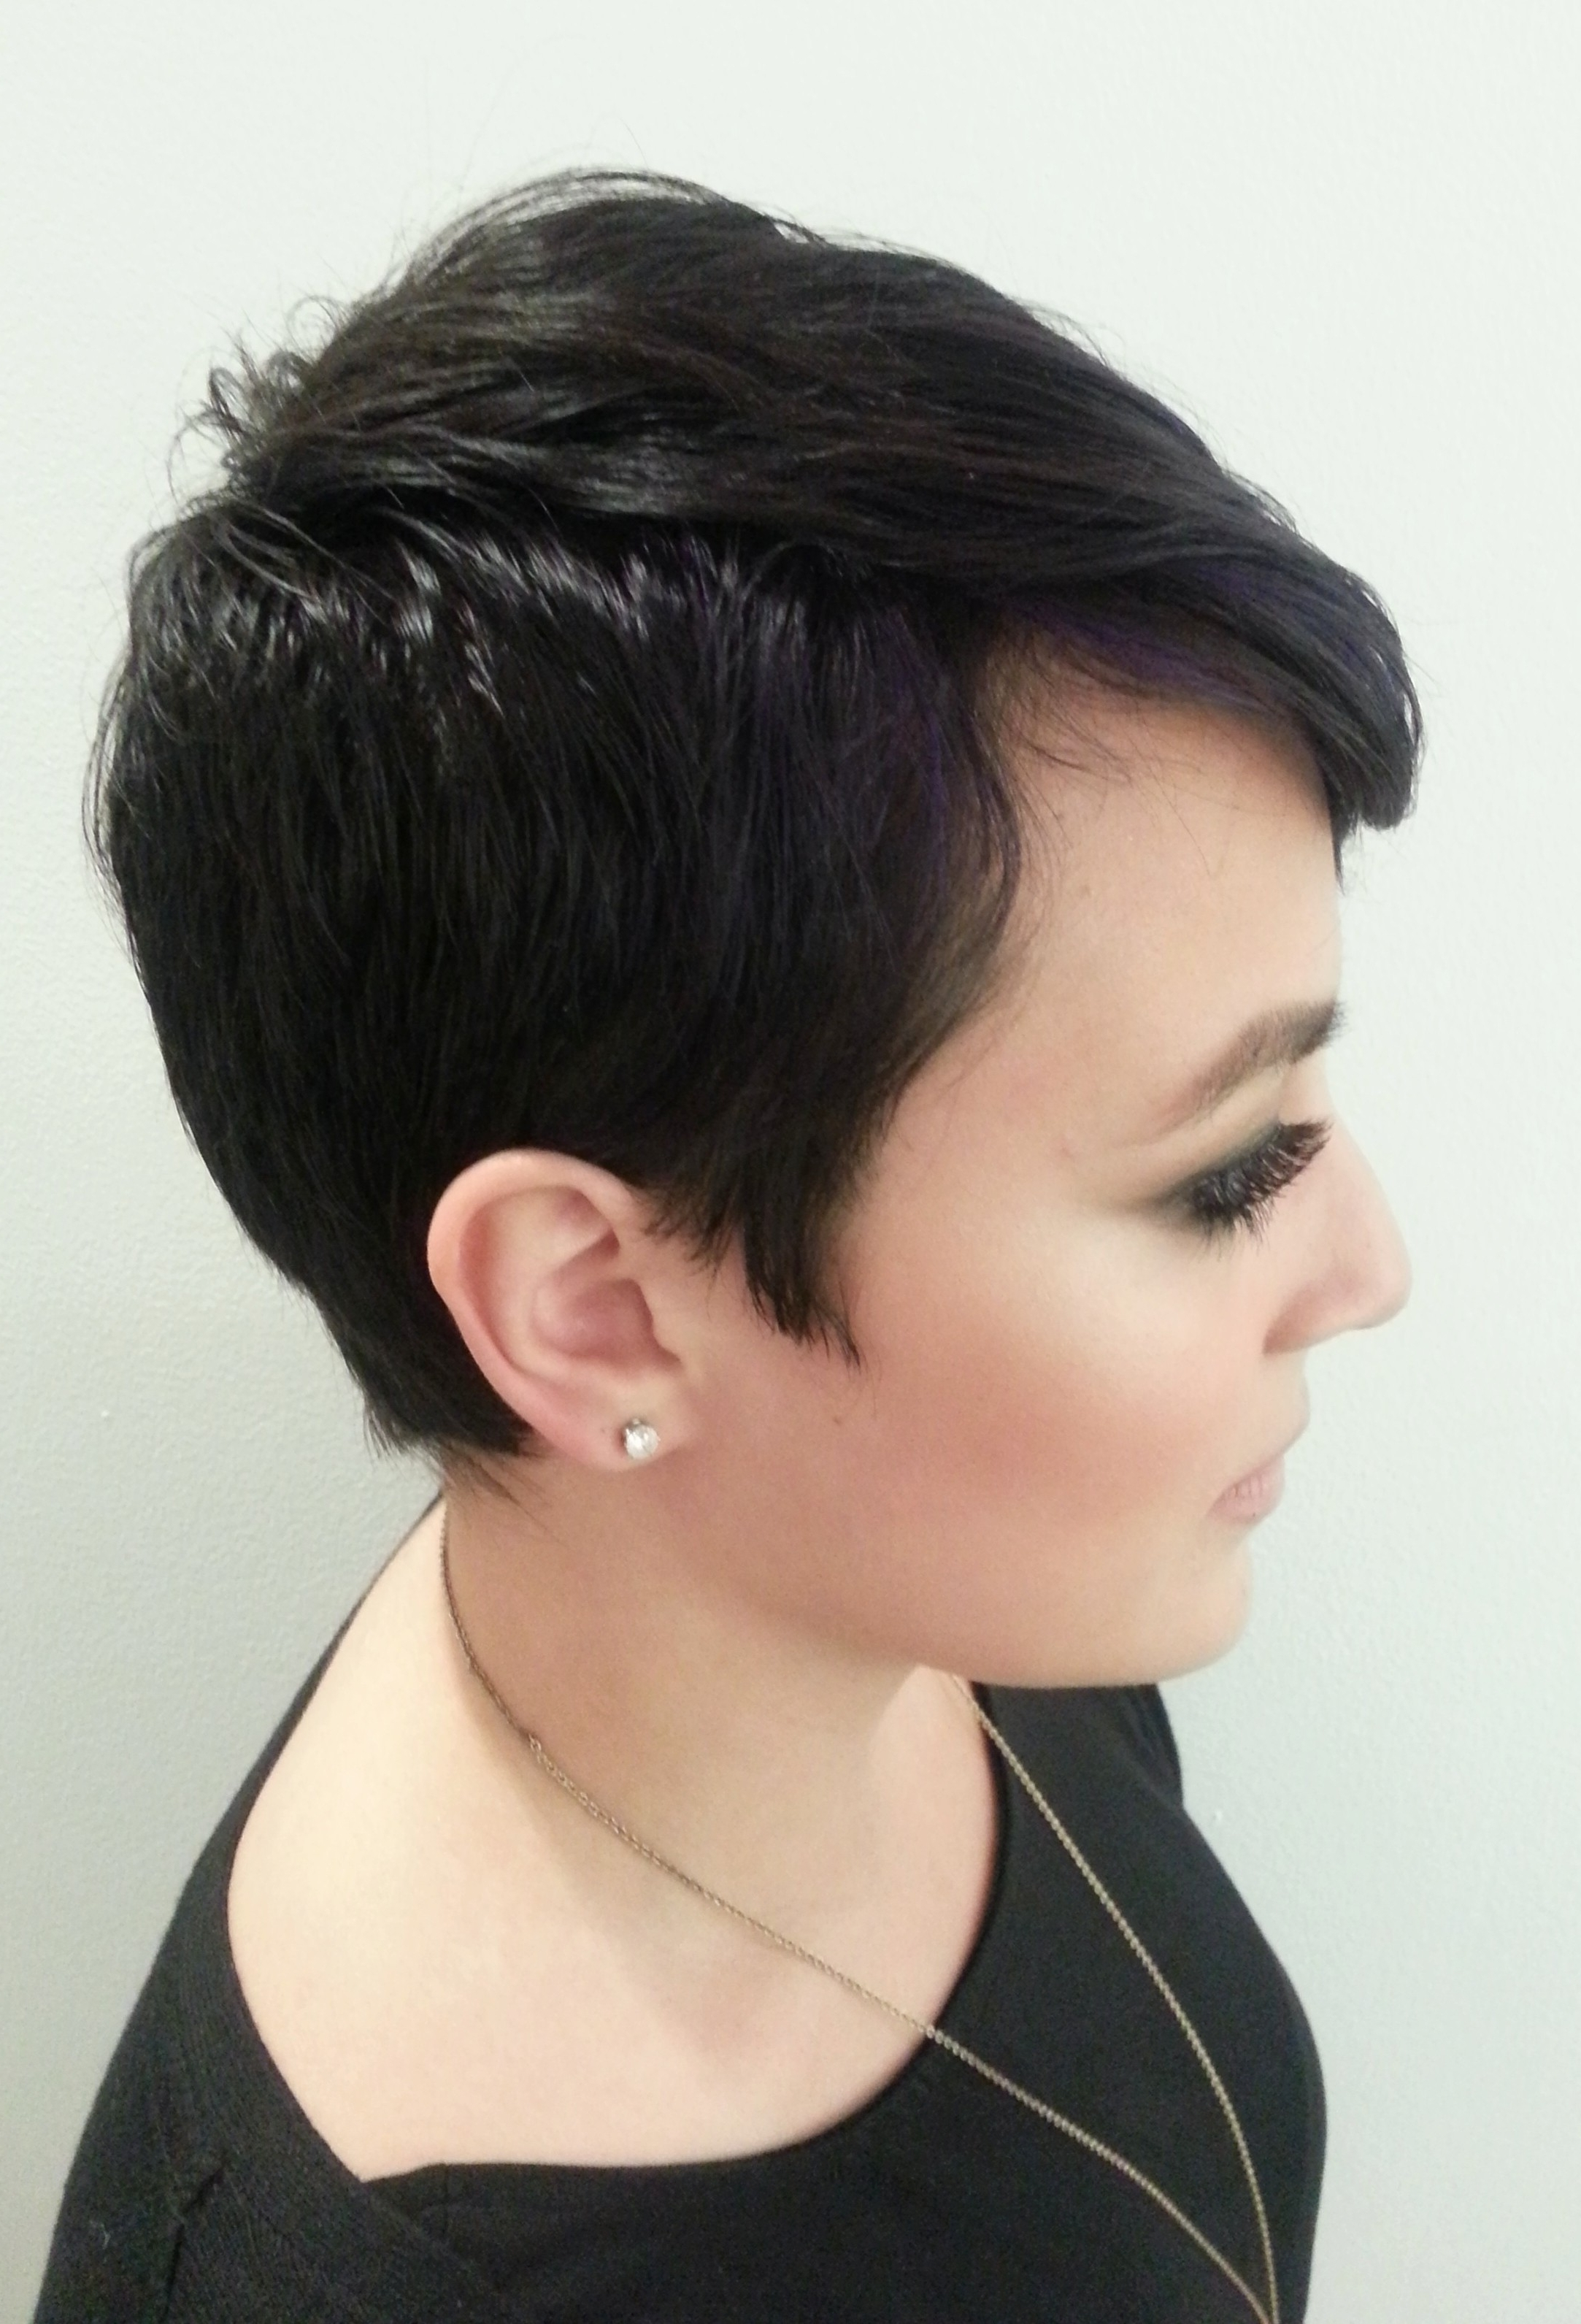 Pixie Haircut For Thick Curly Hair Short Hairstyles Thick Hair Throughout Most Current Pixie Hairstyles For Thick Wavy Hair (View 14 of 15)